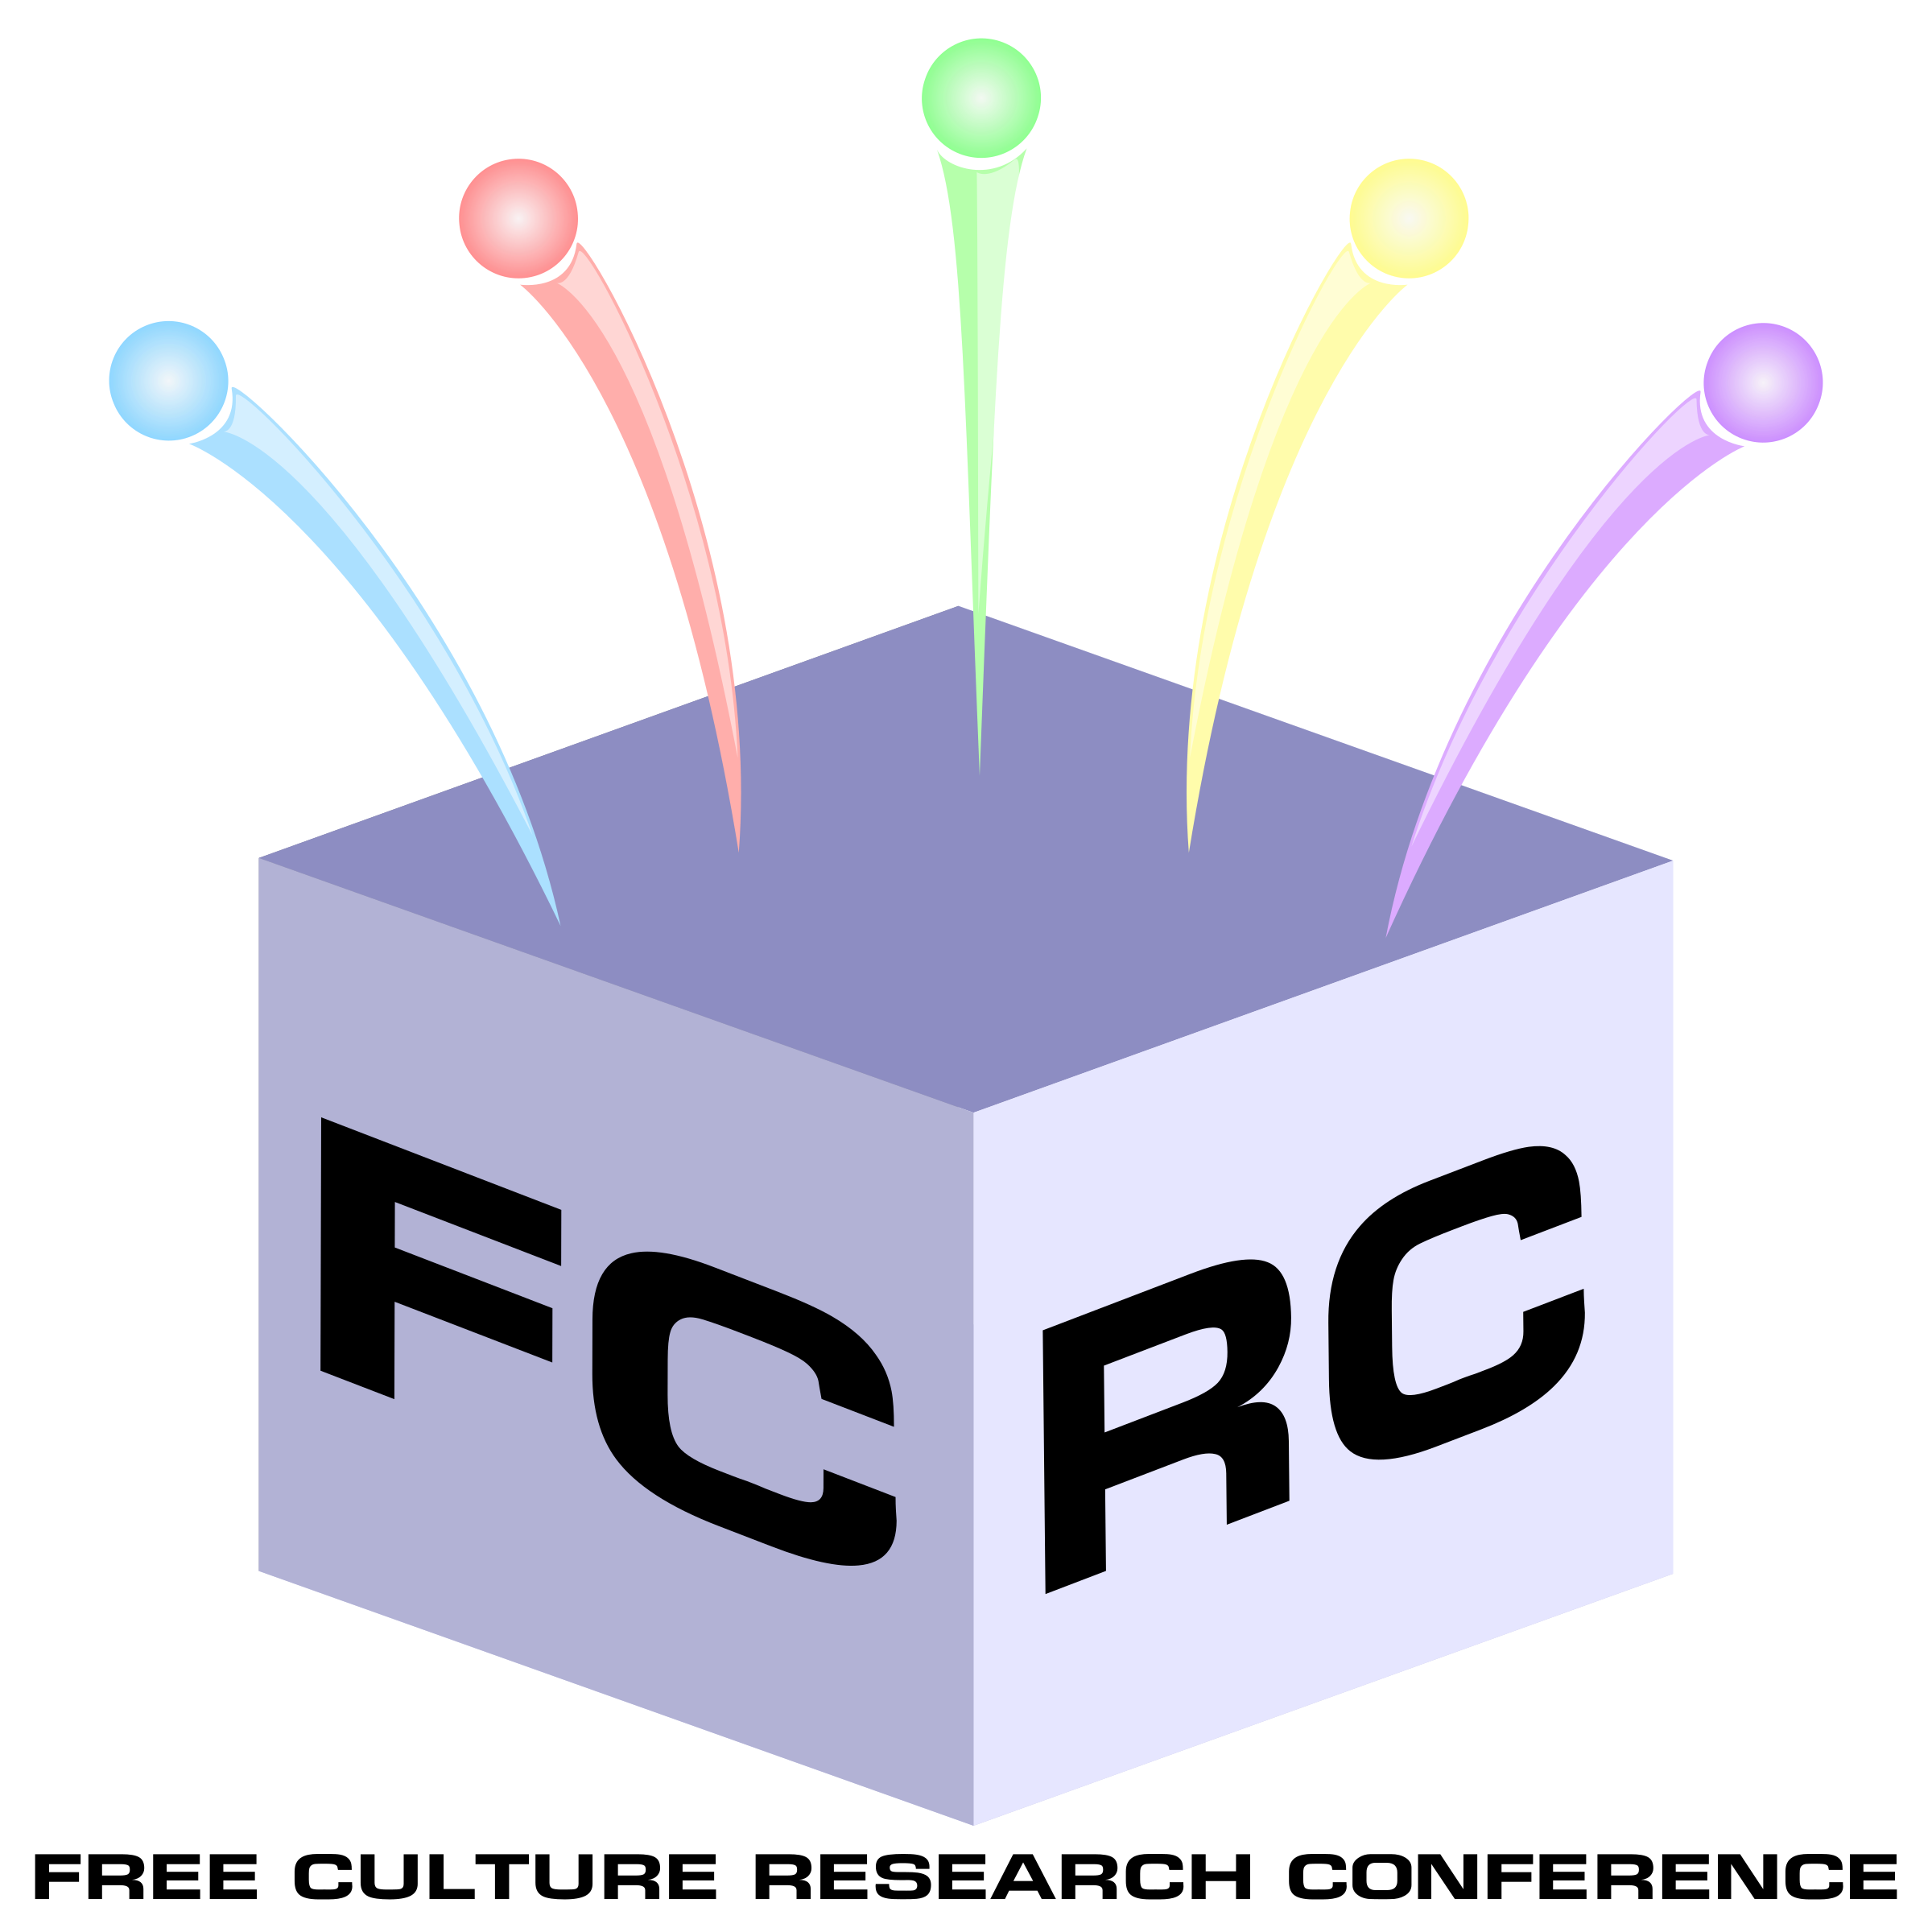 FCRC Logo Entry by everville